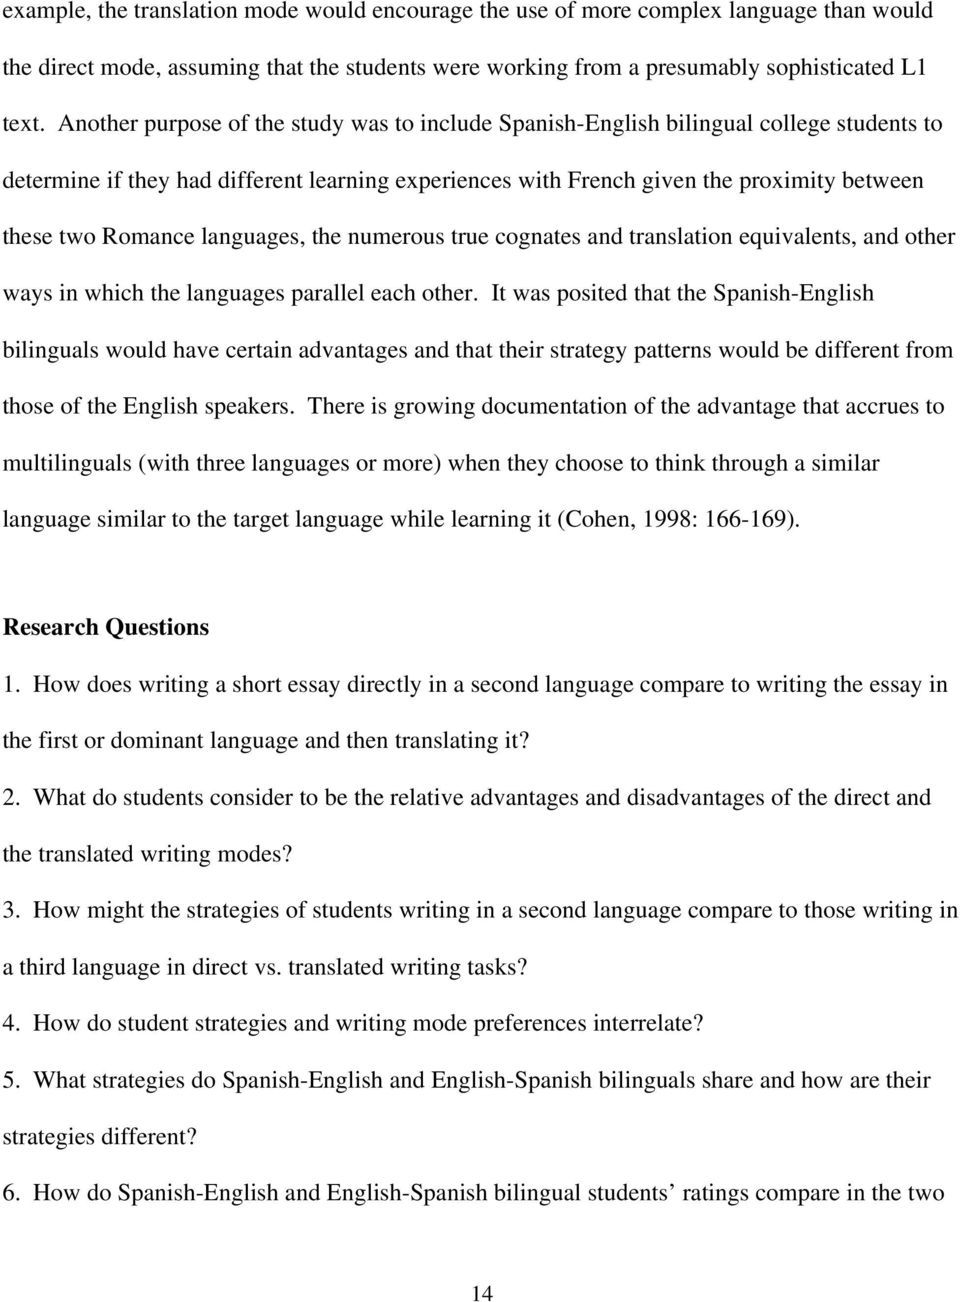 003 Translate Essay To Spanish Writing An In Direct Vs Translated What How Write About Yourself Pa Teaching Google Your My Tips Essays Phrases Staggering Into Does Mean Full